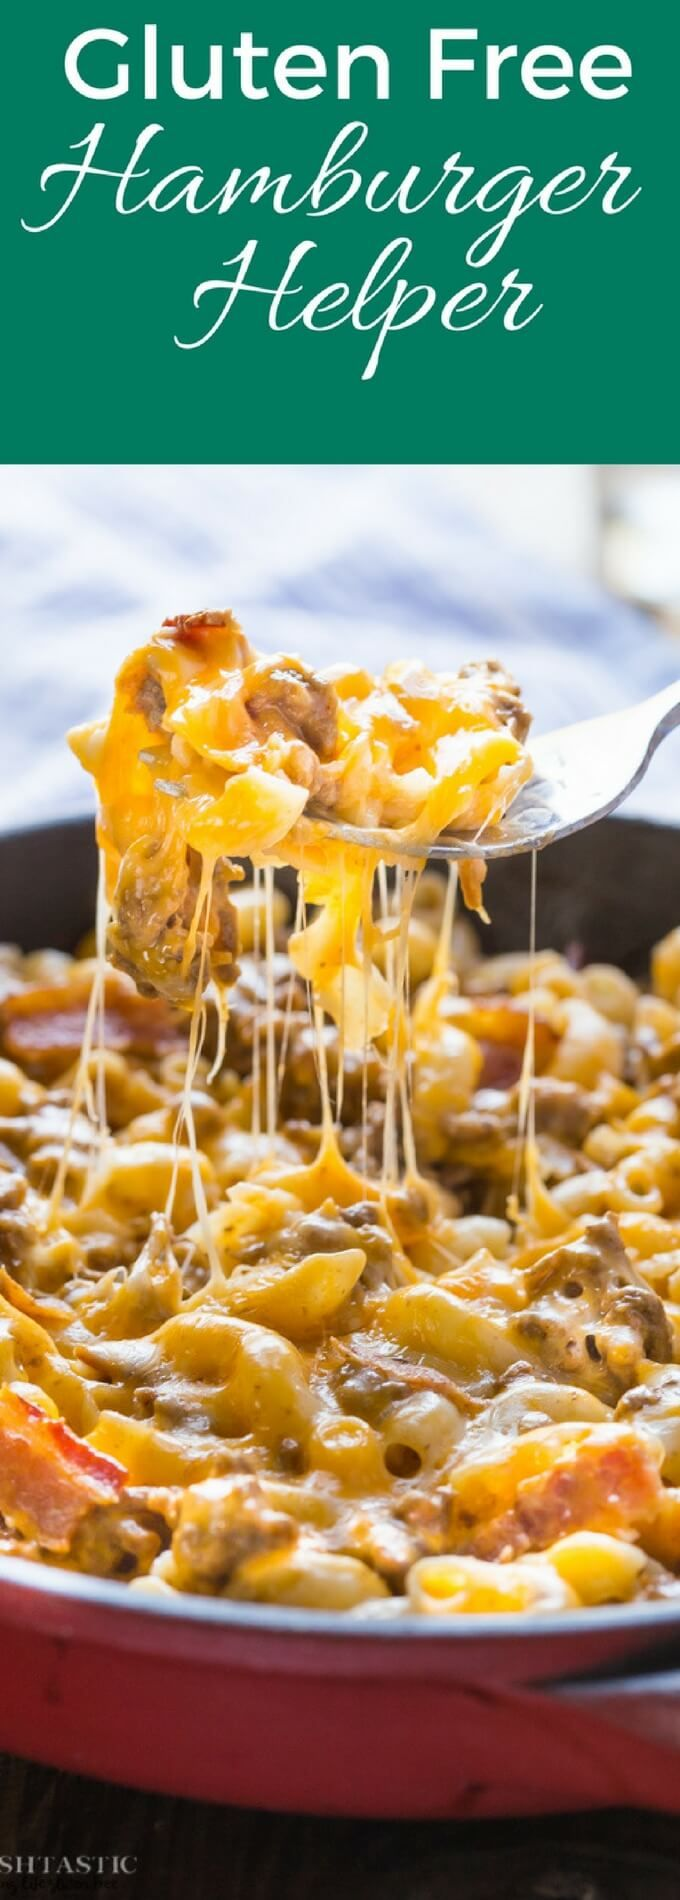 Insanely delicious healthy Gluten Free Hamburger Helper recipe! all the flavors of a bacon cheeseburger but in a skillet, my family absolutely LOVE it!